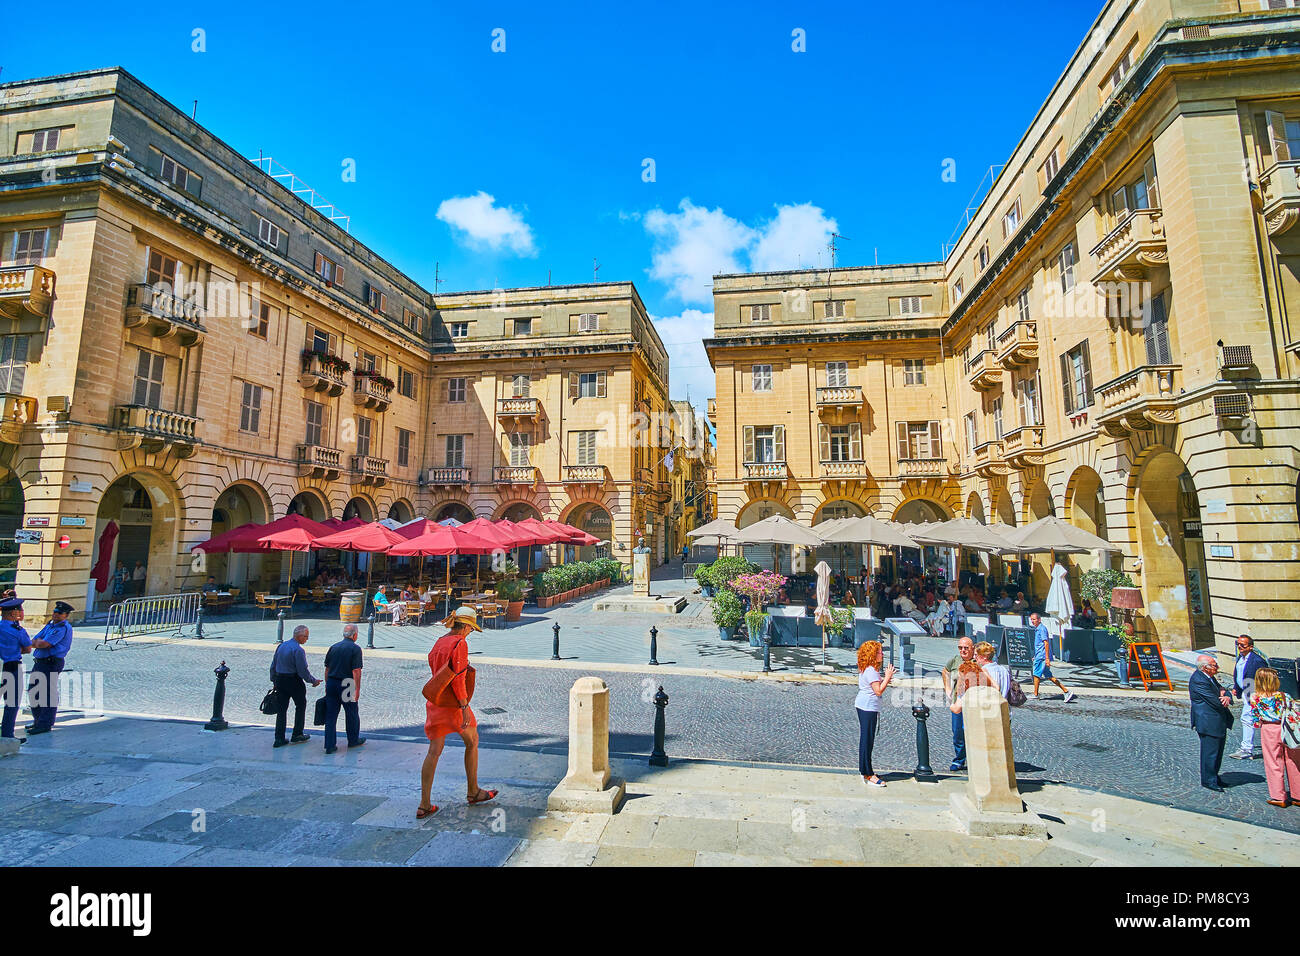 VALLETTA, MALTA - JUNE 17, 2018: The beautiful St John square, located in front of Co-Cathedral, with shady terraces of outdoor restaurants and stone  - Stock Image